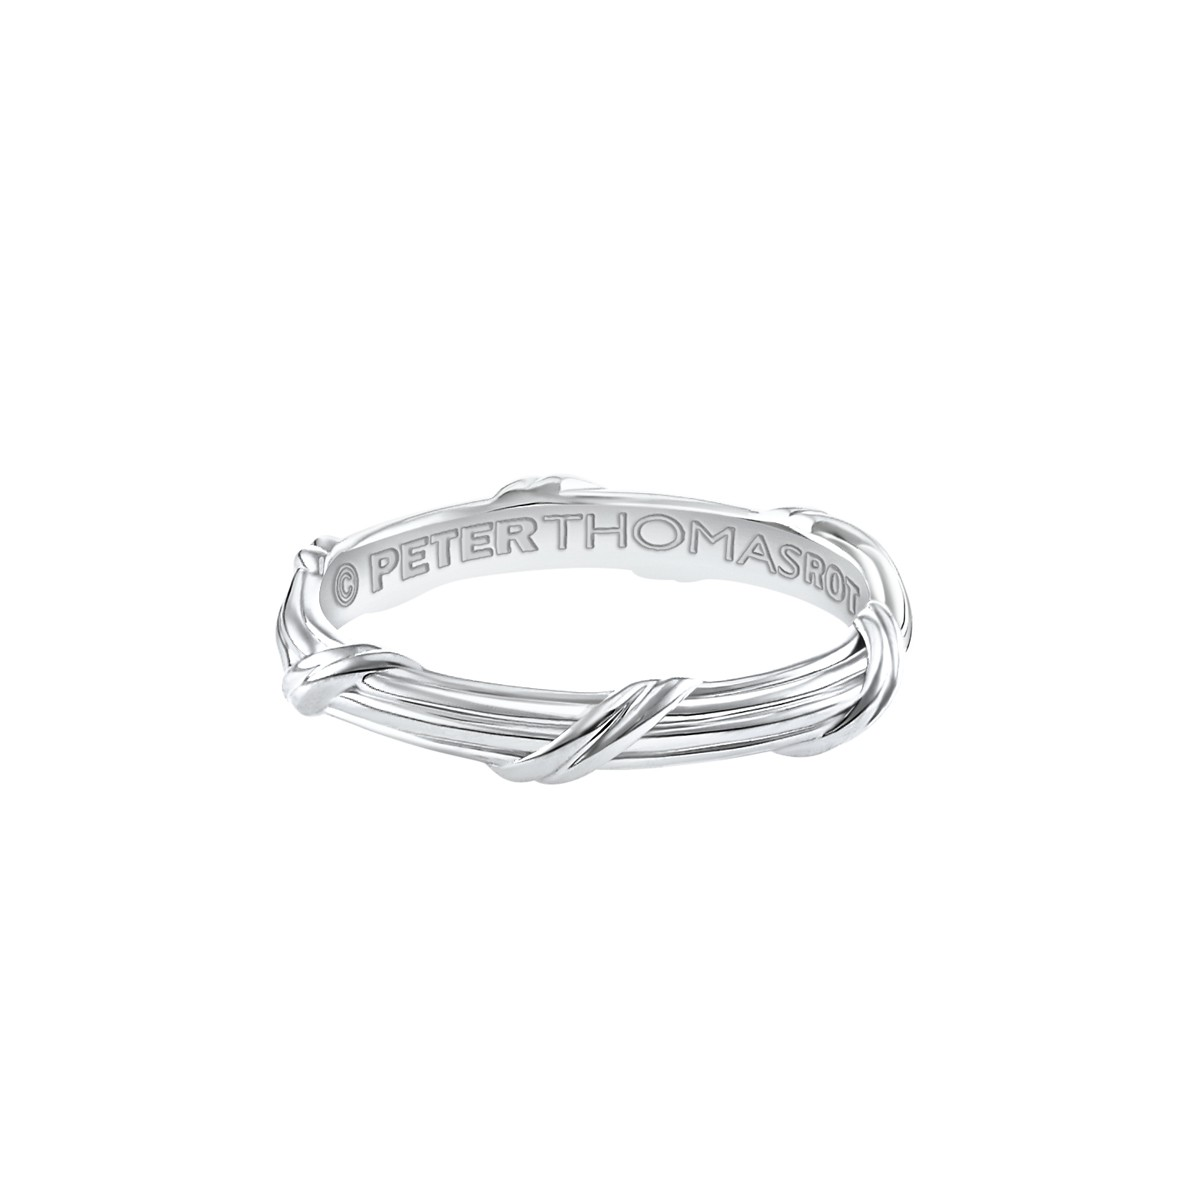 Heritage Eternity Band in 18K white gold 3 mm Sizes 10 - 13